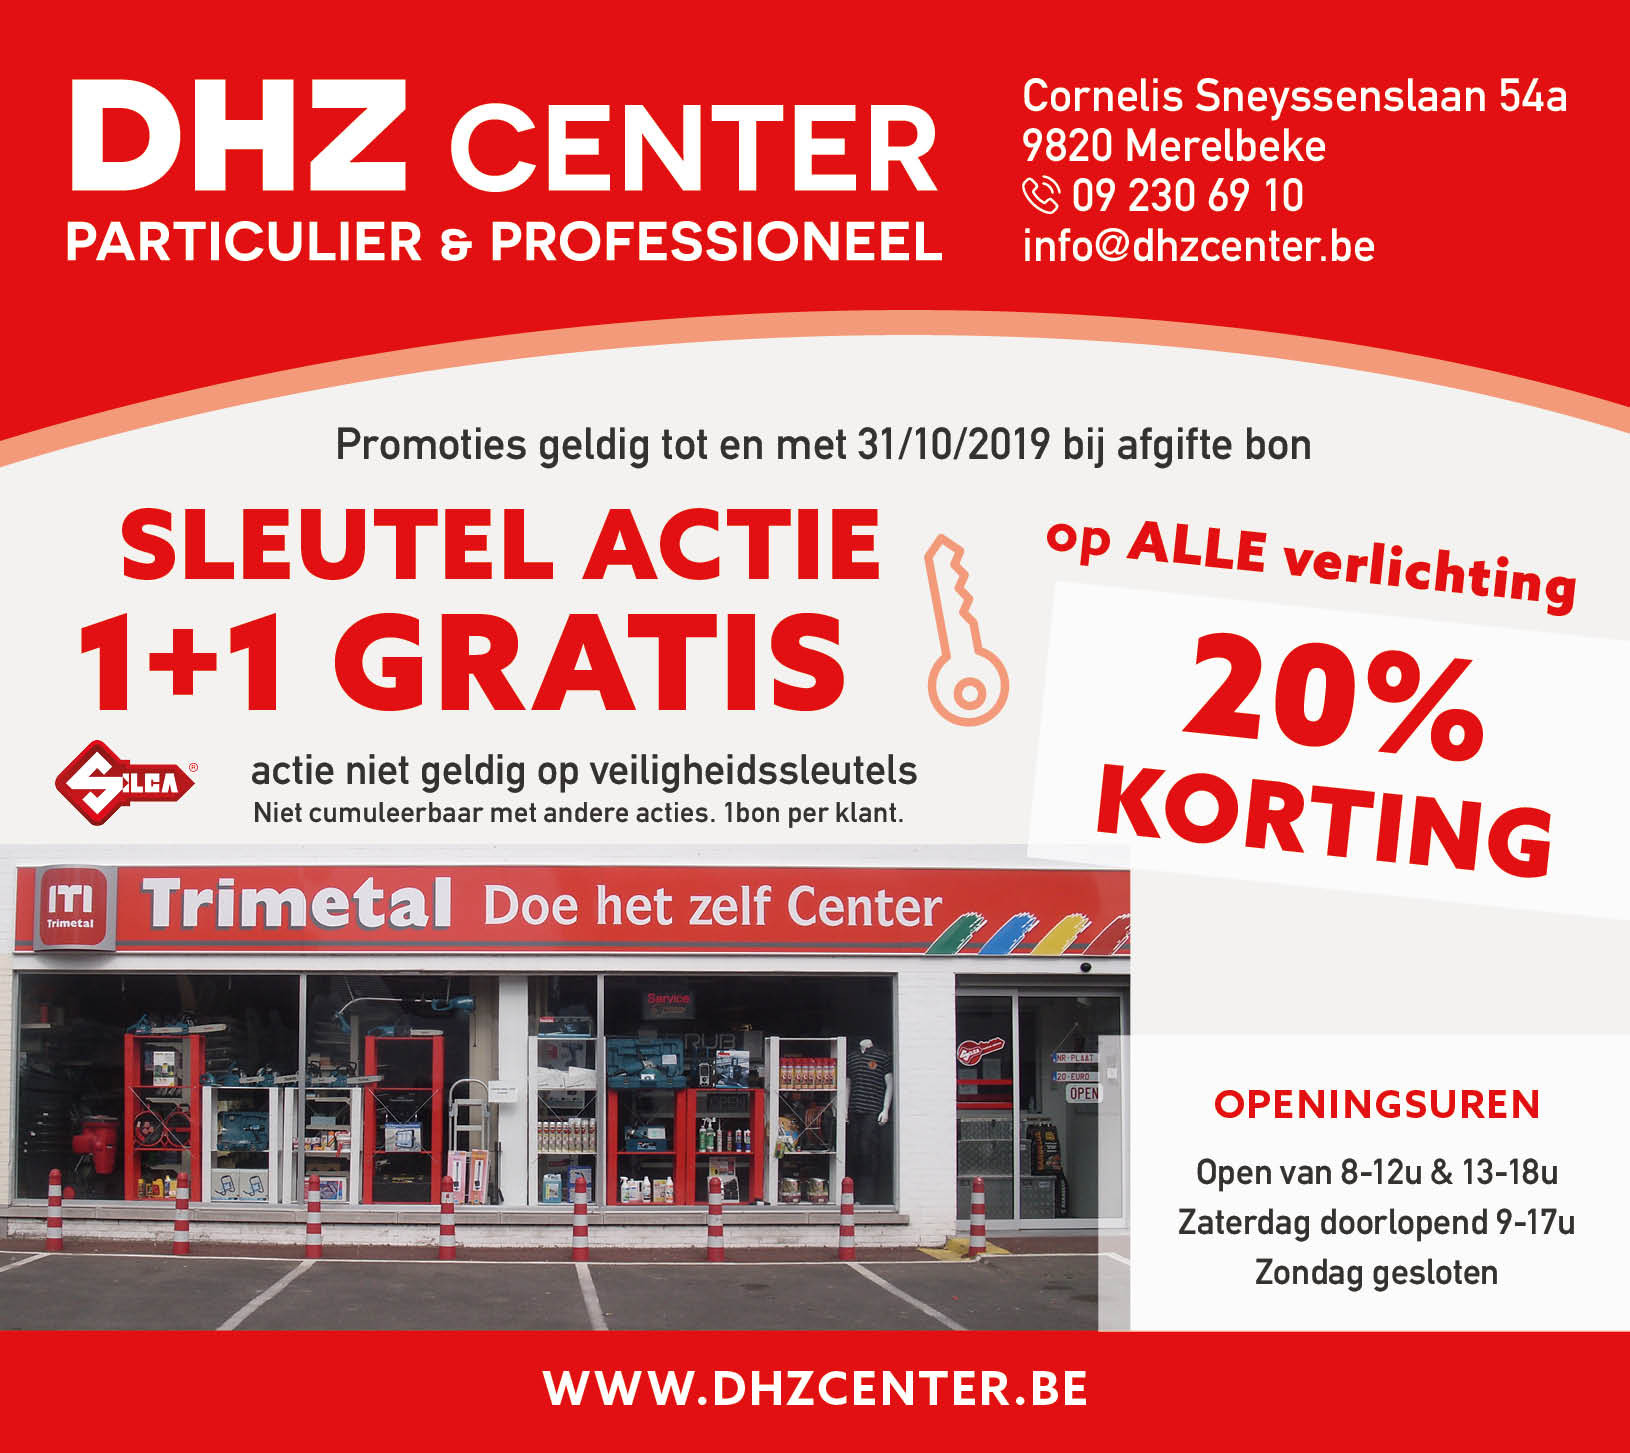 DHZ_Center_Merelbeke_sept_2019.jpg